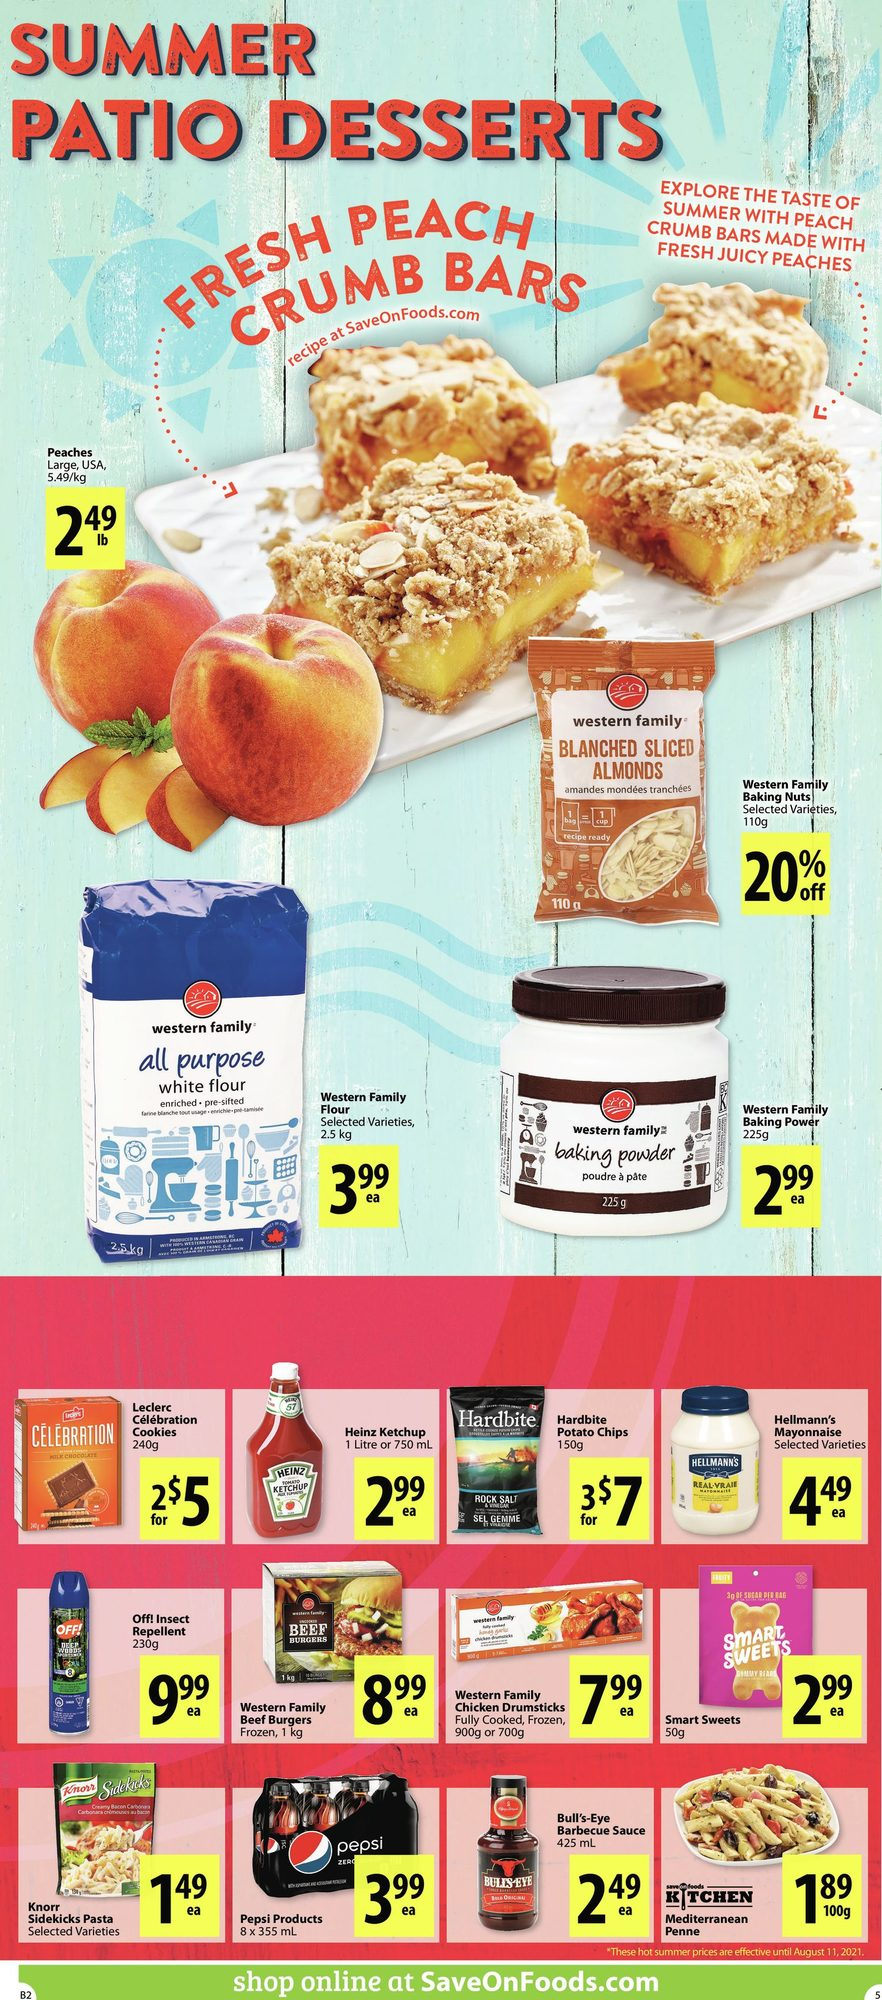 Save-On-Foods - Weekly Flyer Specials - Page 5